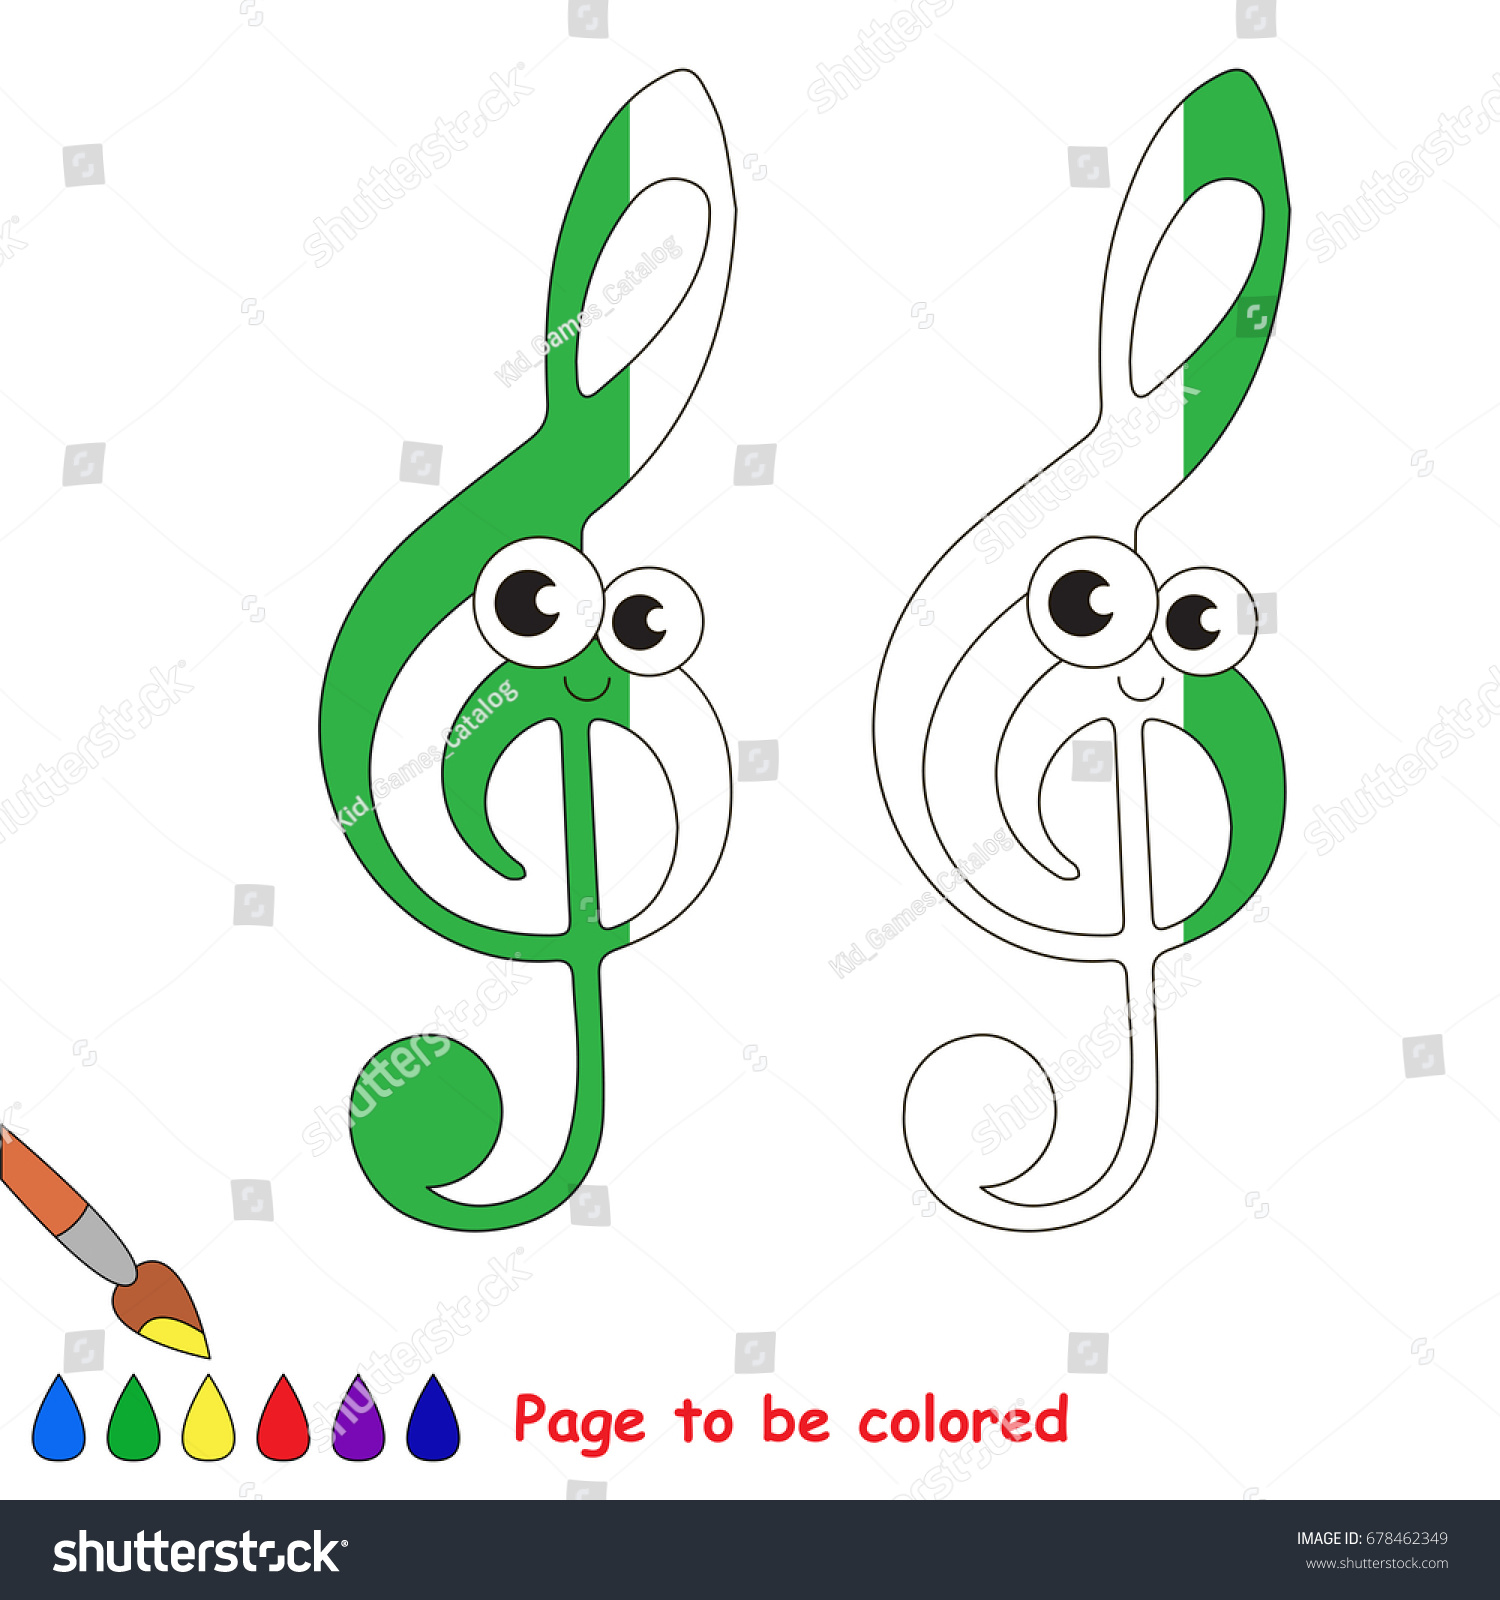 Funny Green Treble Clef Coloring Book Stock Vector 678462349 ...